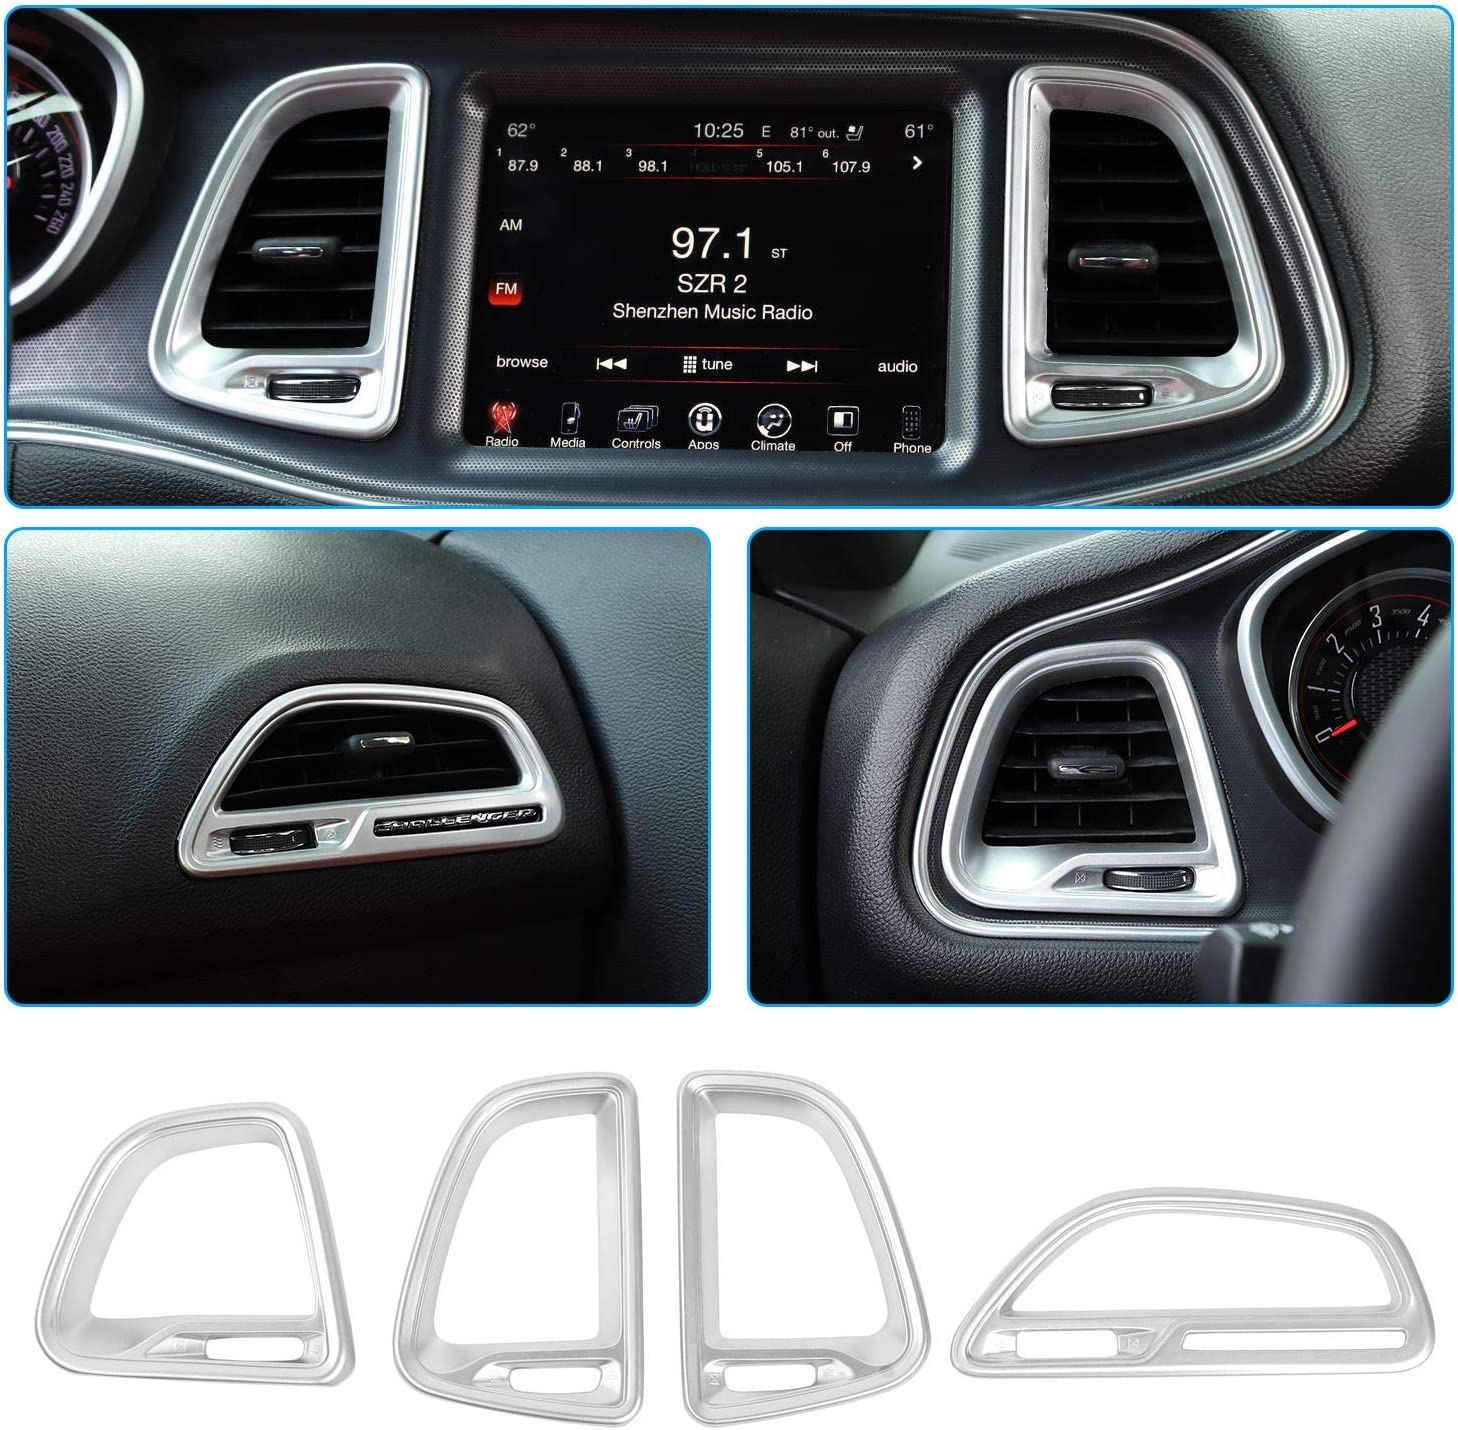 Silver, 4ps Voodonala for Challenger Center Console Air Condition Outlet Vent Trim Accessories for Dodge Challenger 2015 up